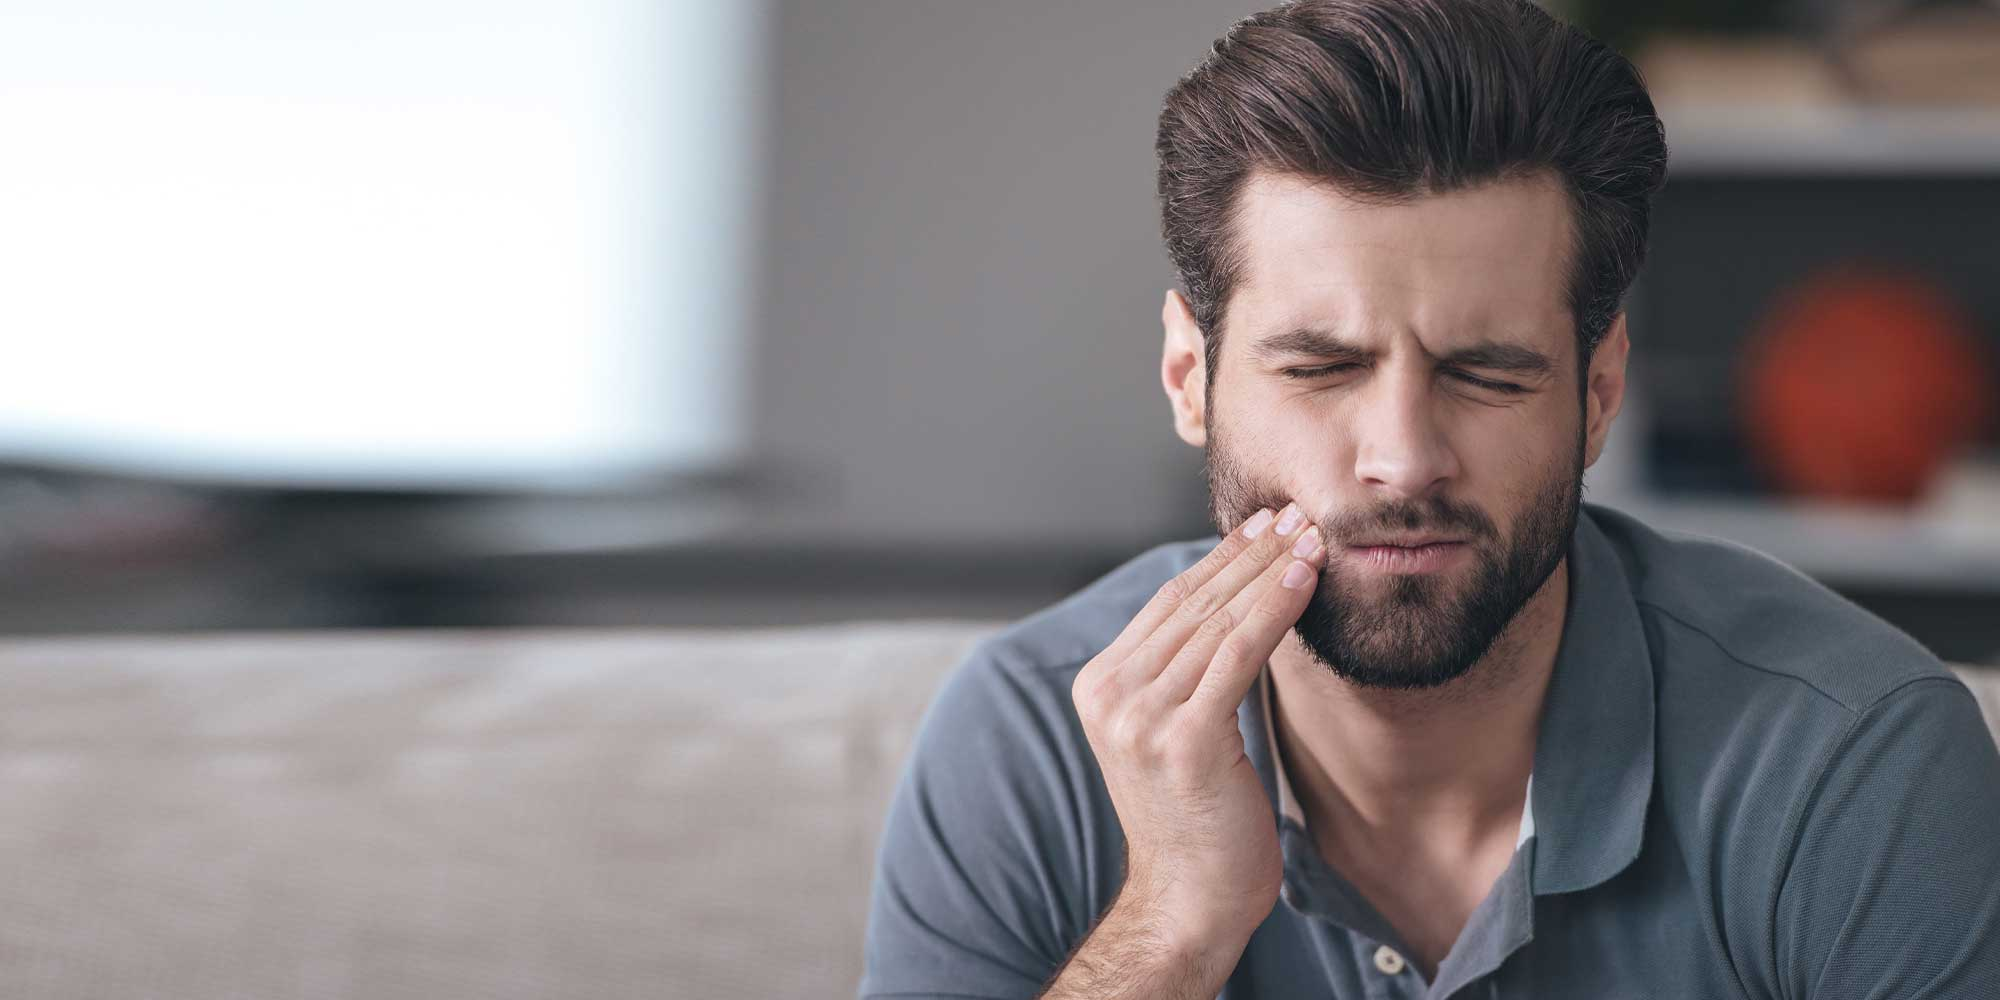 A young man with a beard holding his jaw in pain